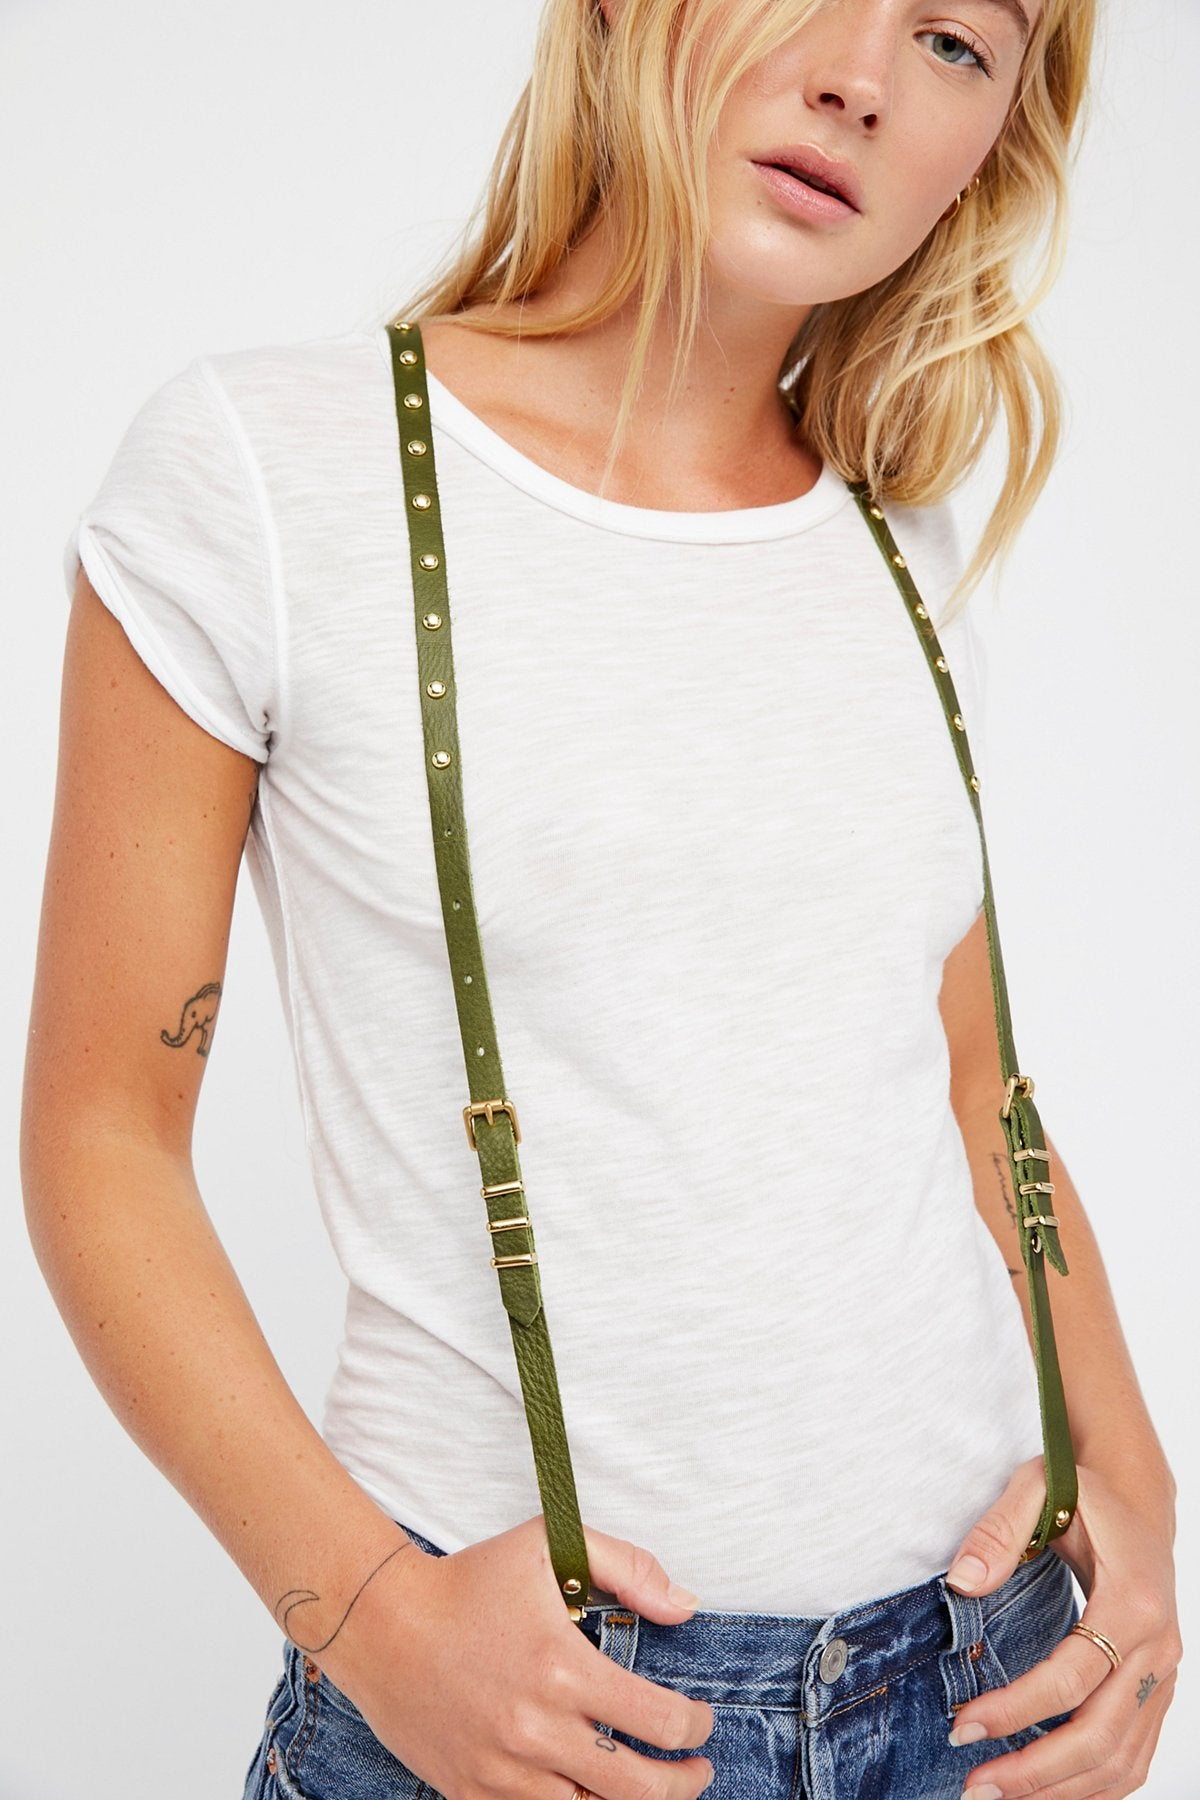 LUX Studded Leather Suspenders